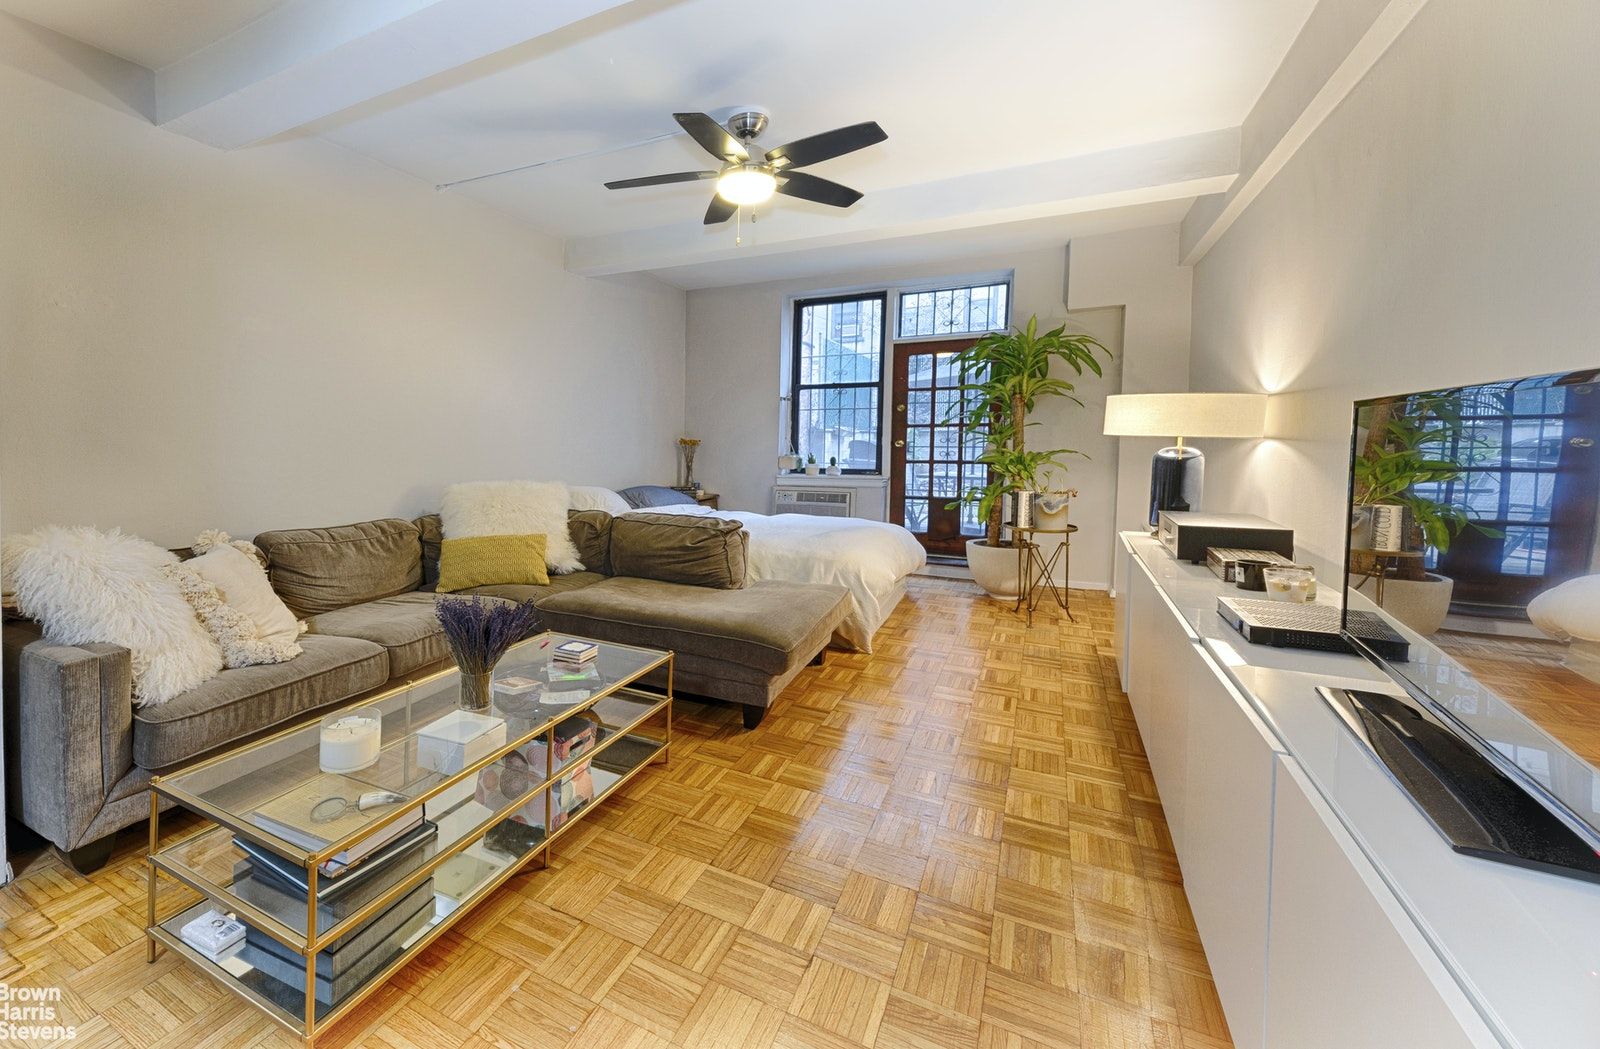 229 East 28th Street, Murray Hill Kips Bay, NYC, 10016, Price Not Disclosed, Rented Property, Halstead Real Estate, Photo 2